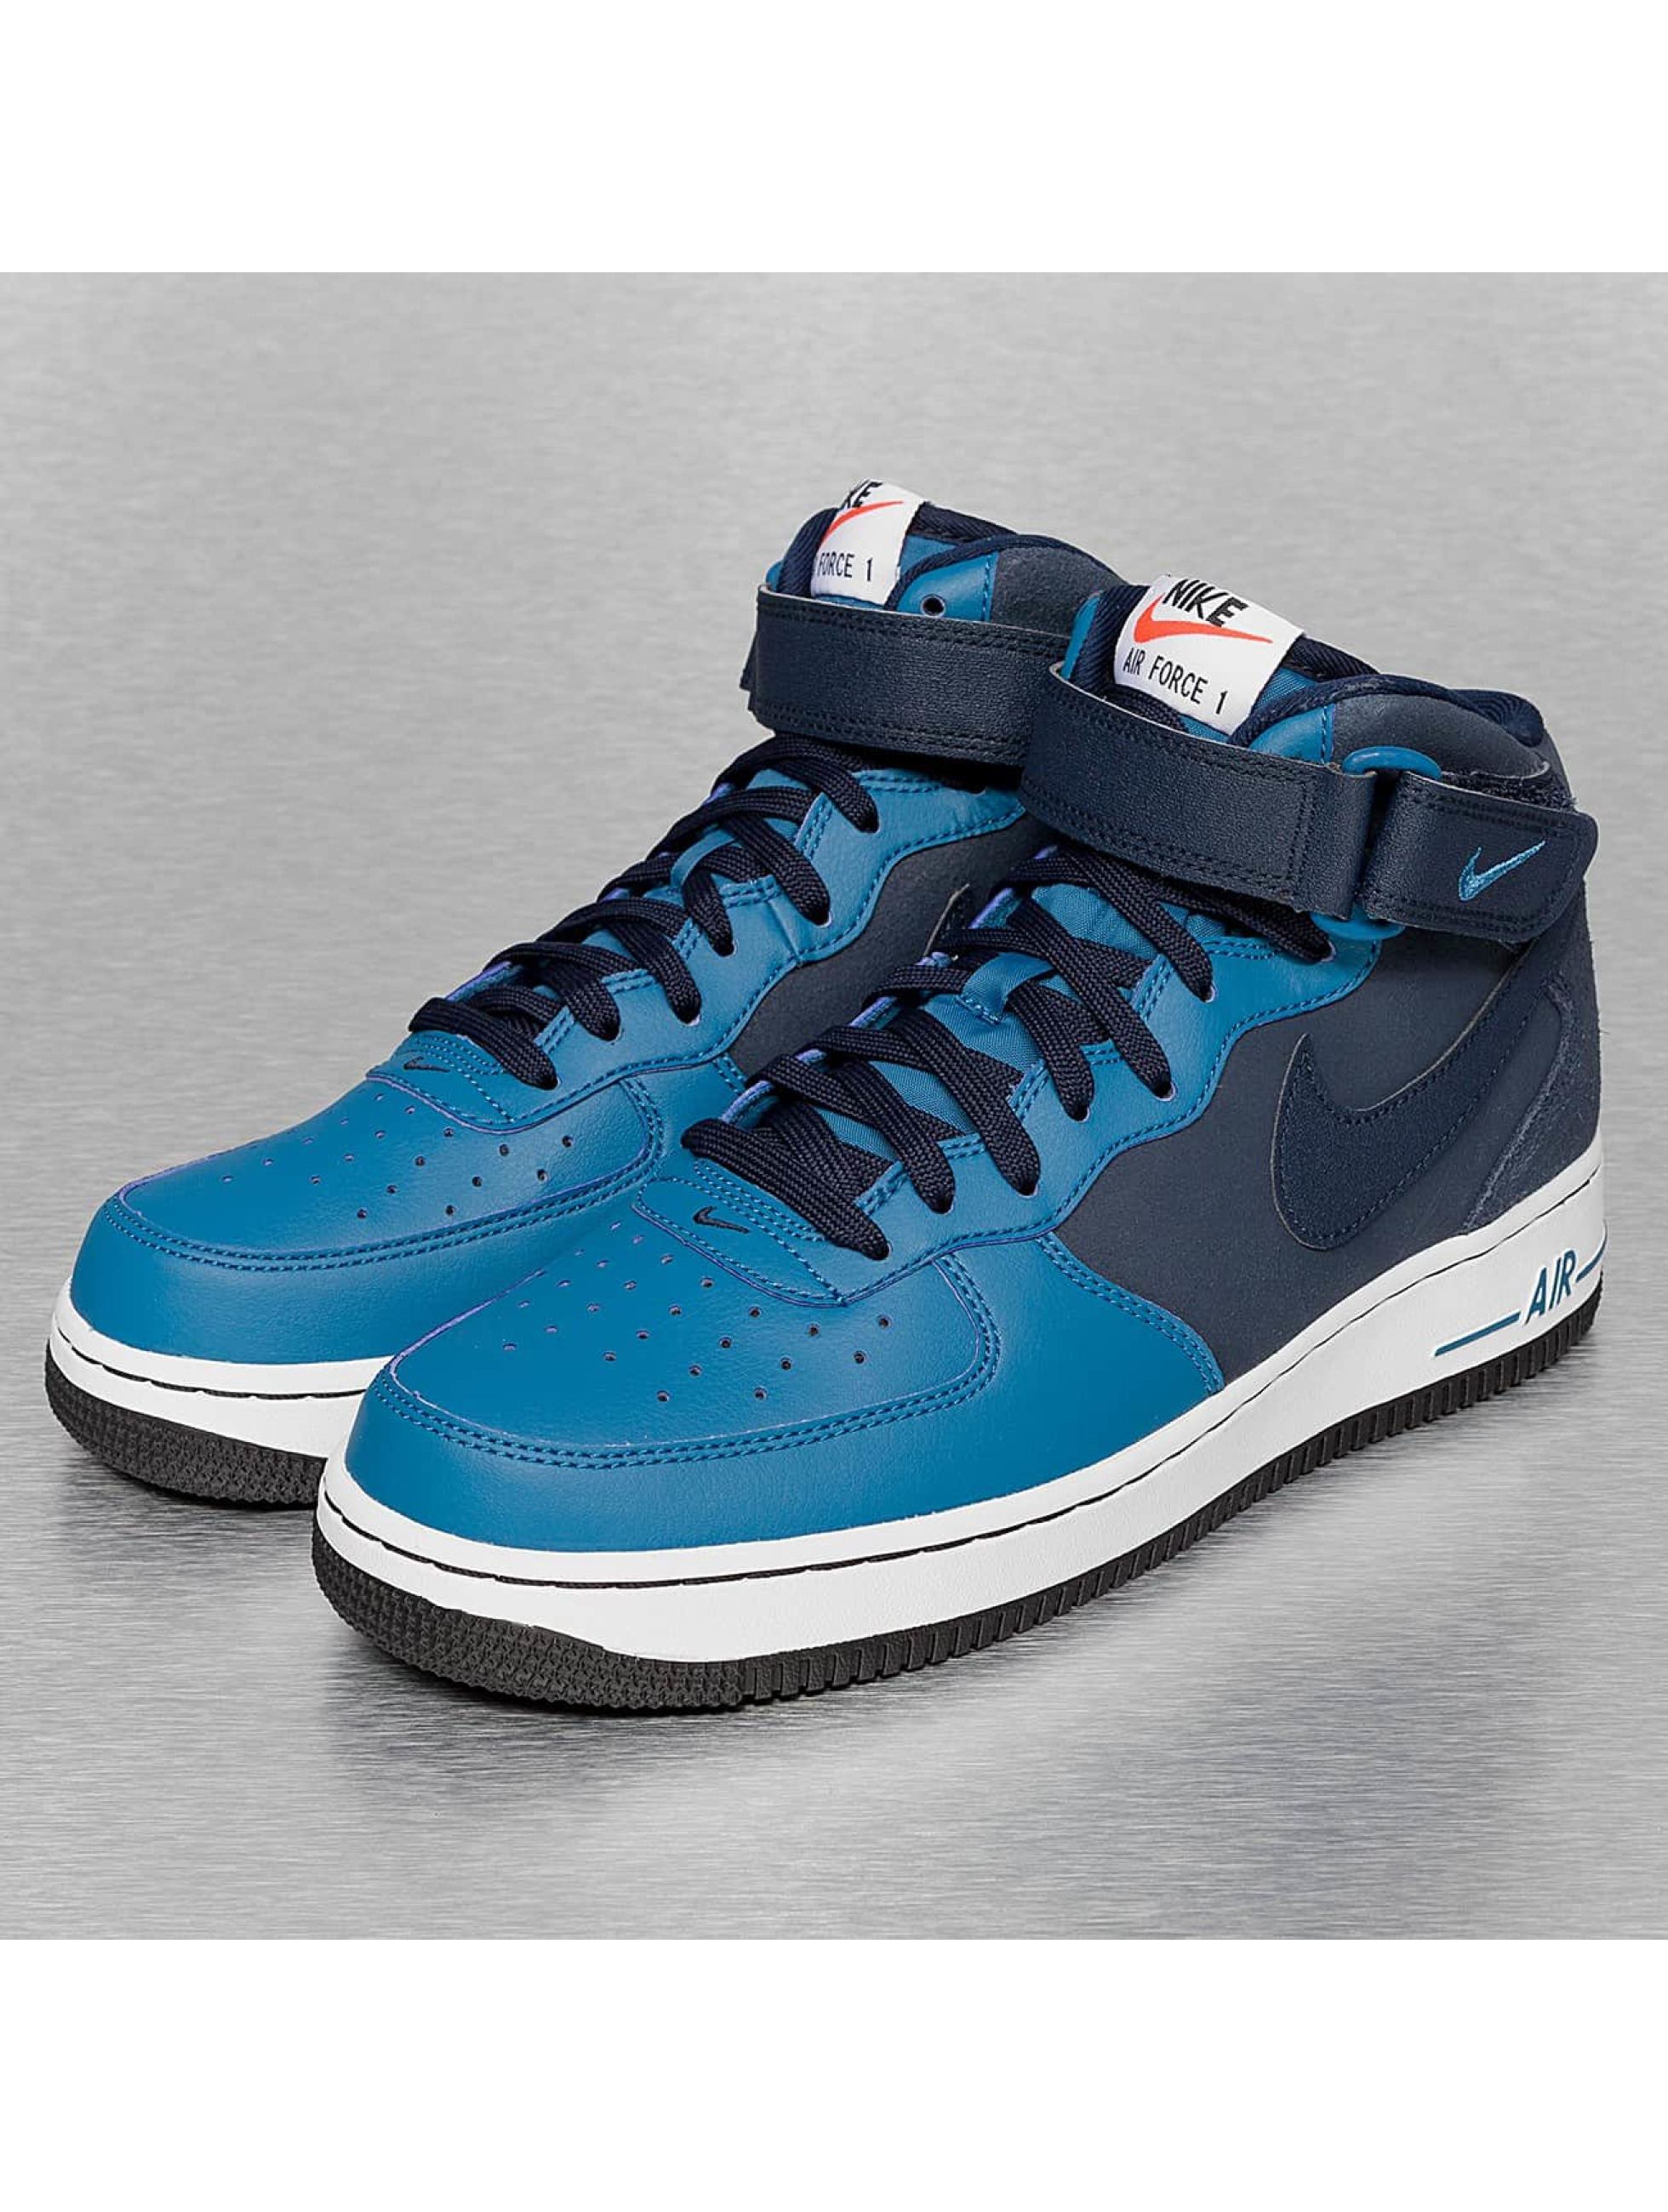 Nike Air Force Blaue Sohle